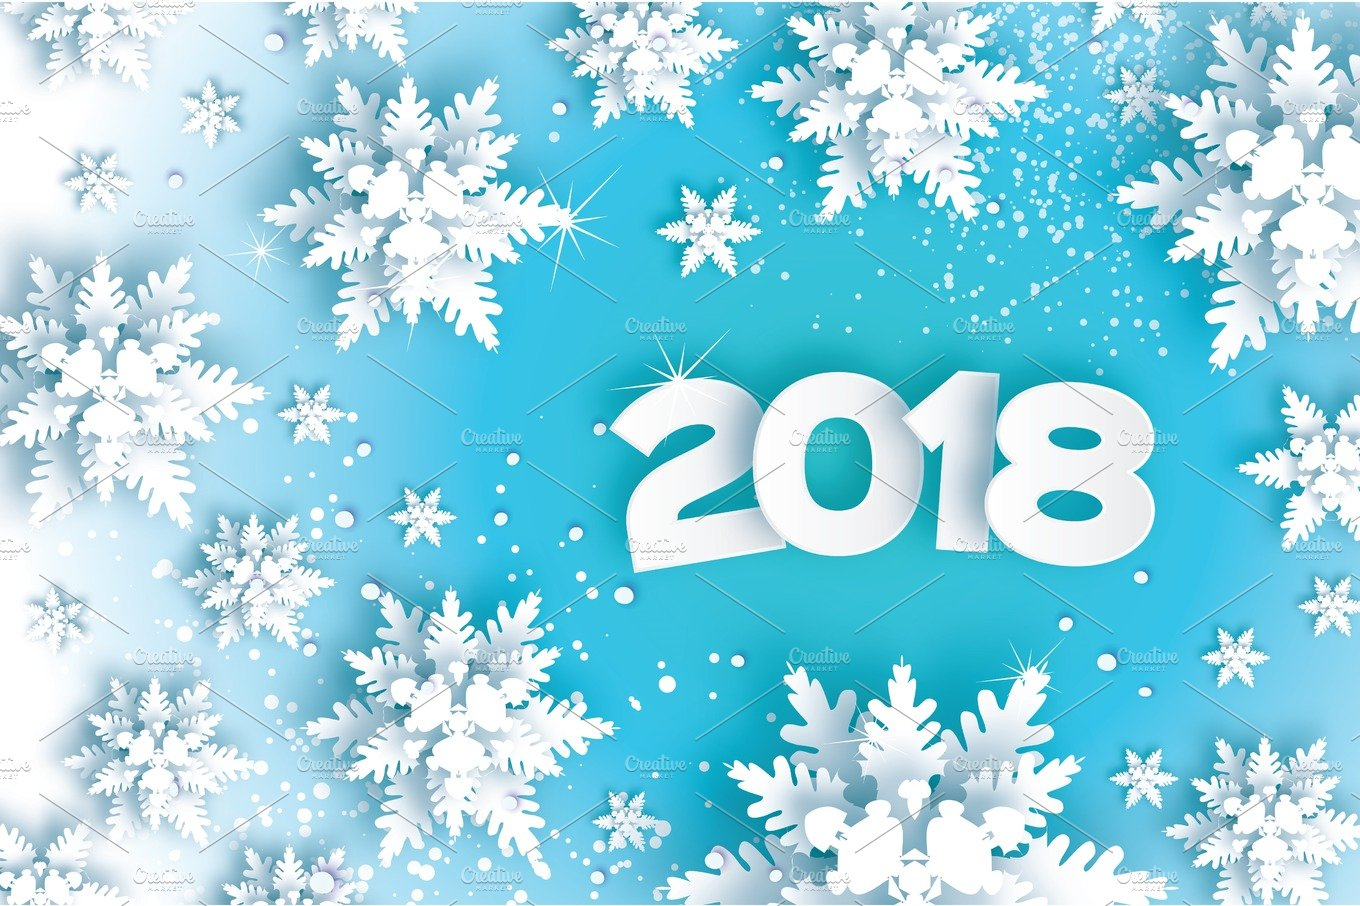 2018 happy new year background blue greetings card for christmas invitations paper cut snow